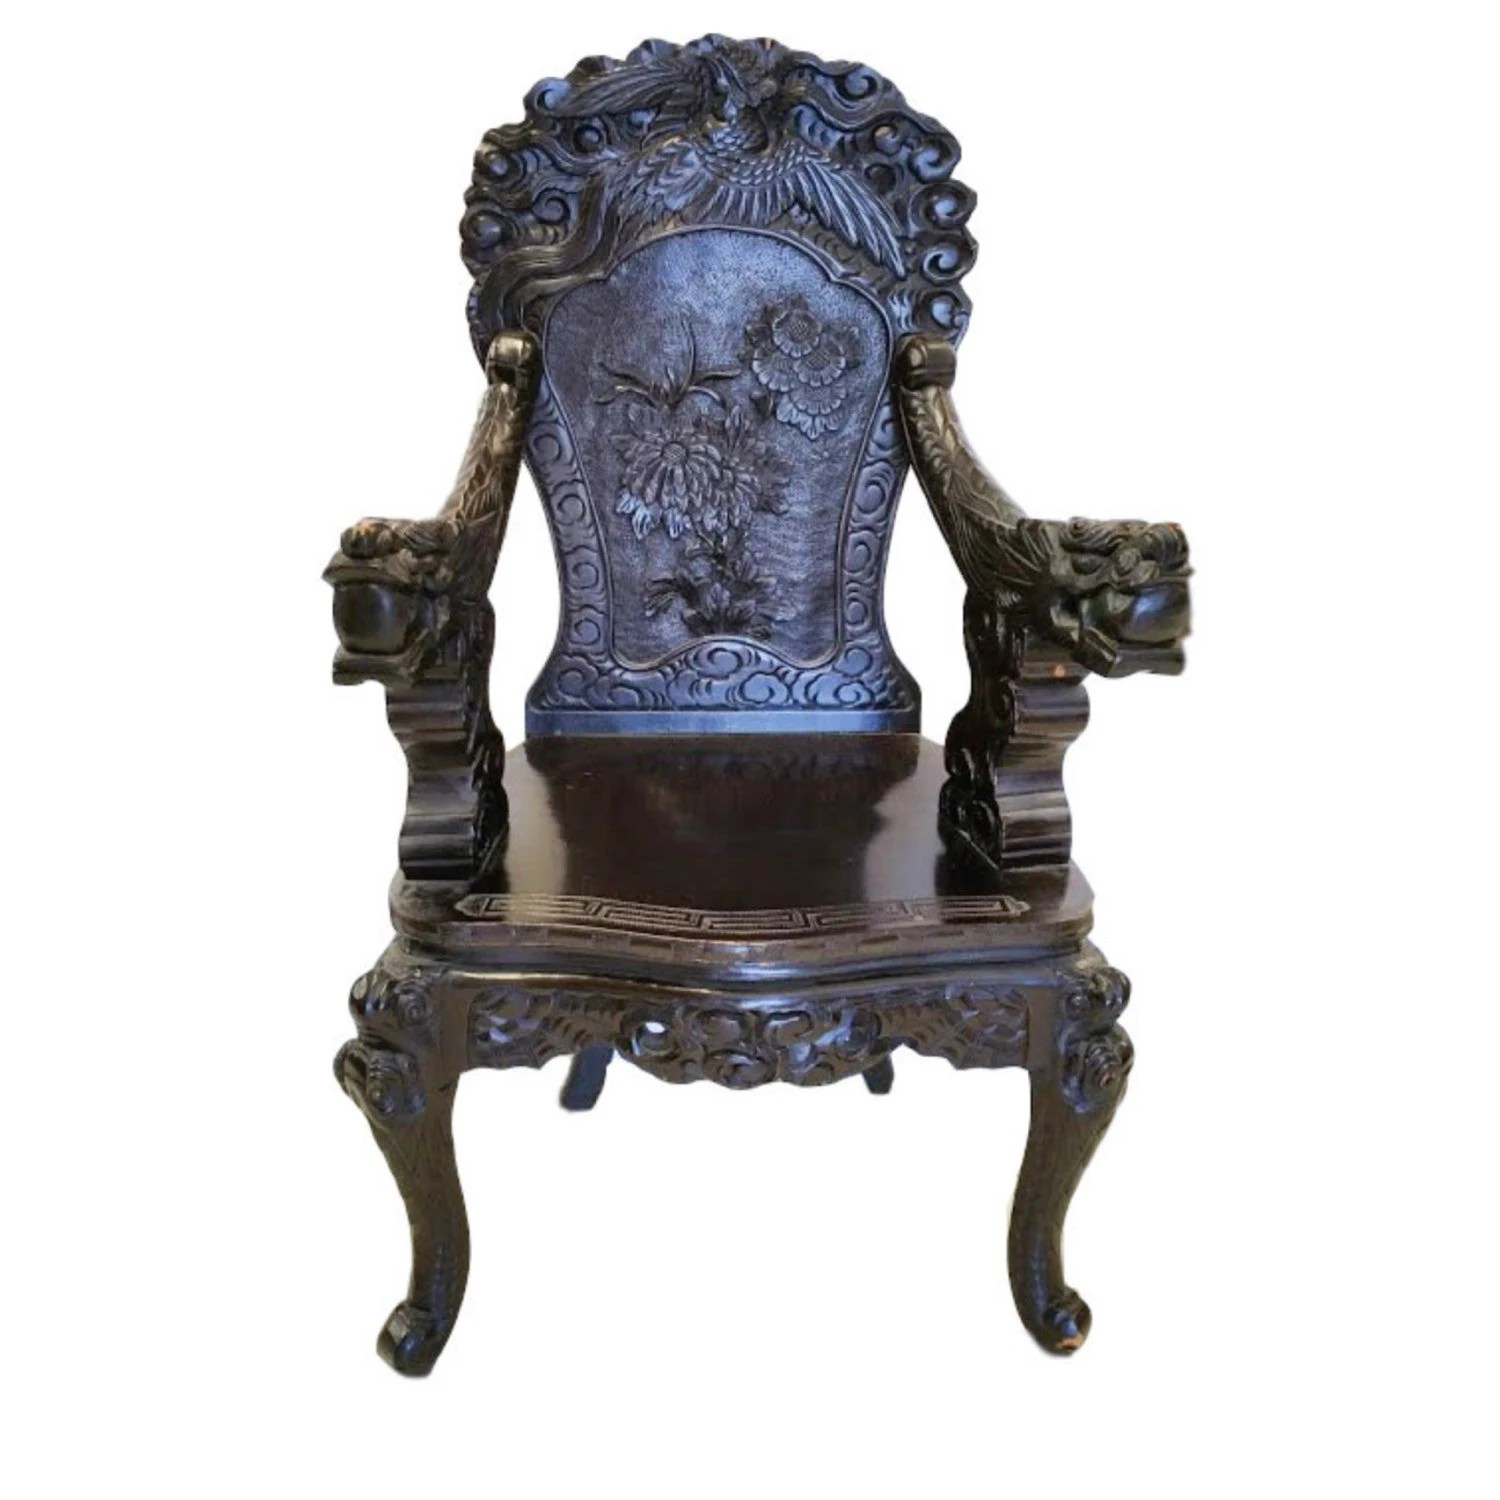 antique chinese dragon chair worn leather vintage hand carved